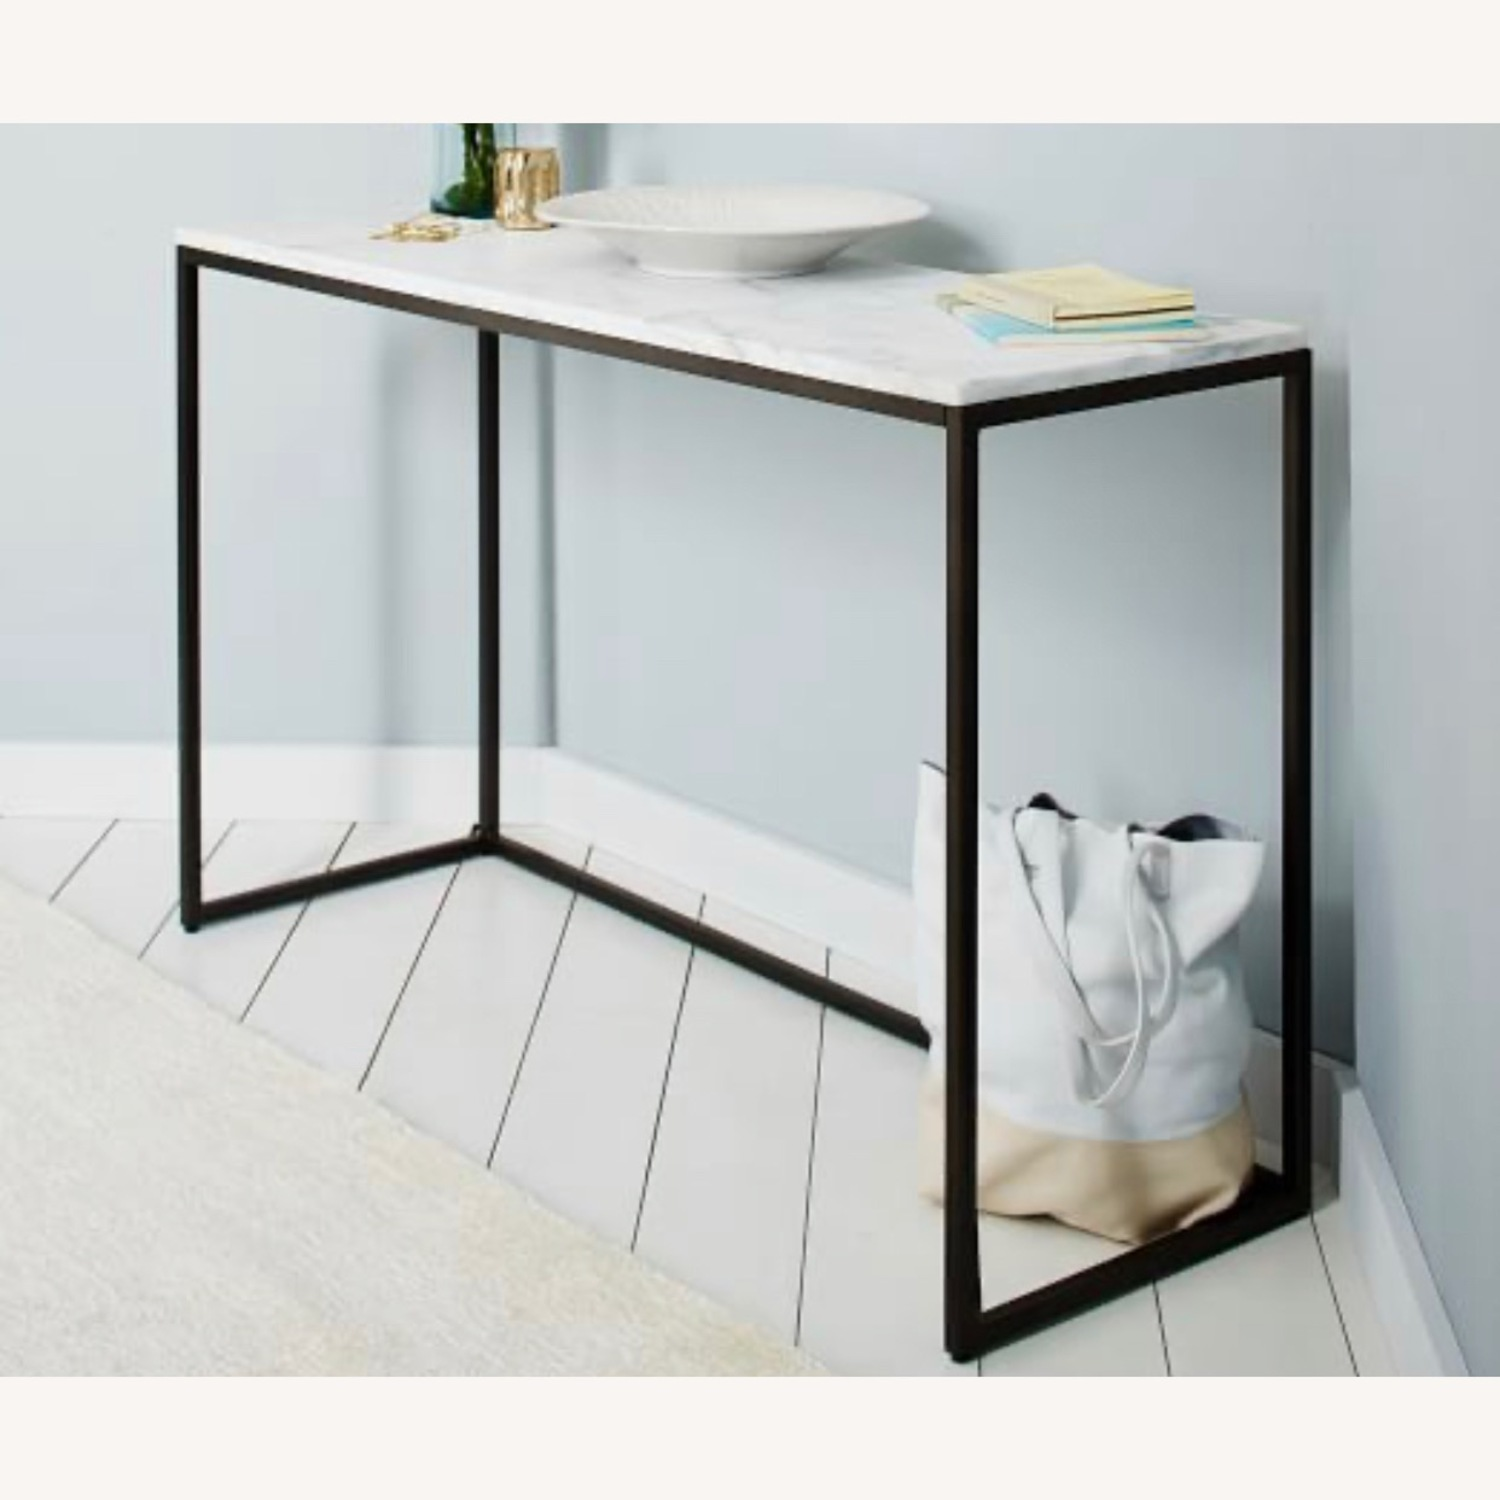 West Elm Marble Console Table - image-1